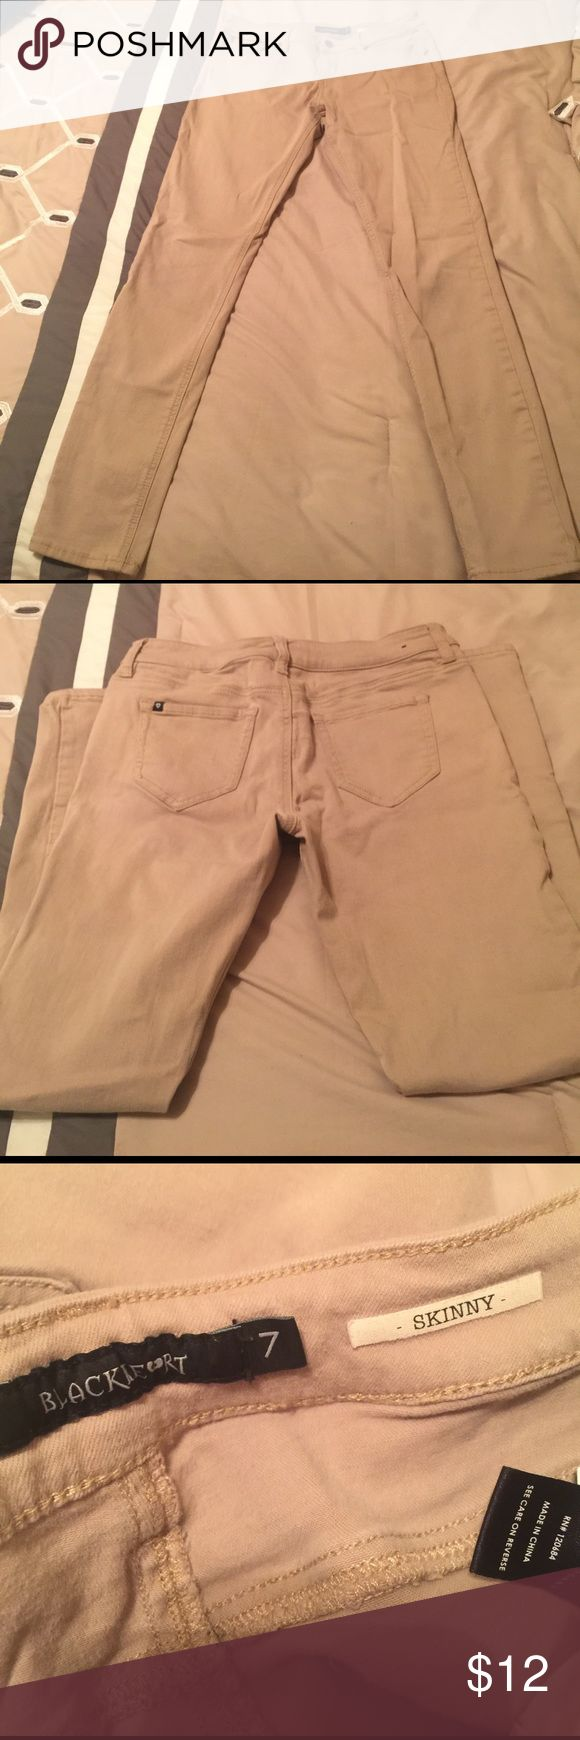 Blackheart khaki skinny jeans 'hot topic' size 7 Size7. Skinny jean. Amazing condition Hot Topic Jeans Skinny